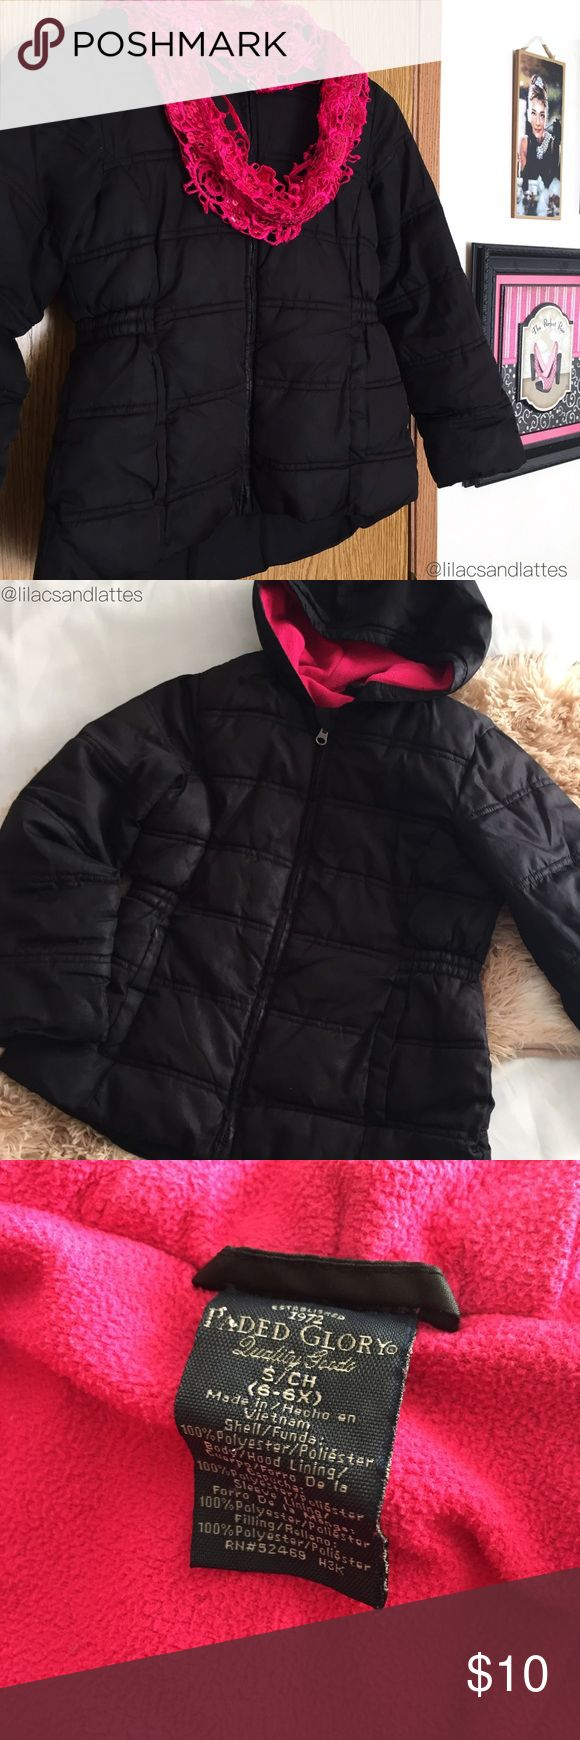 👧🏻Girls Black Puffy Jacket w/Pink Lining {Faded Glory} Girls Black Puffy Jacket w/Pink Lining • Jacket is in excellent condition with a couple small flaws on the left sleeve (pictured) • Thick and warm; 2 front pockets. Size S (6-6X) • 100% Polyester. Only Reasonable Offers Accepted, please use chart for reference. ❌Lowball Offers/Trades/Offline Transactions. ✅Bundles of 3 or more listings are discounted 10%. 👦🏼👧🏻Check out my other listings in the Kids Styles Sections💟 Thank you🍭…